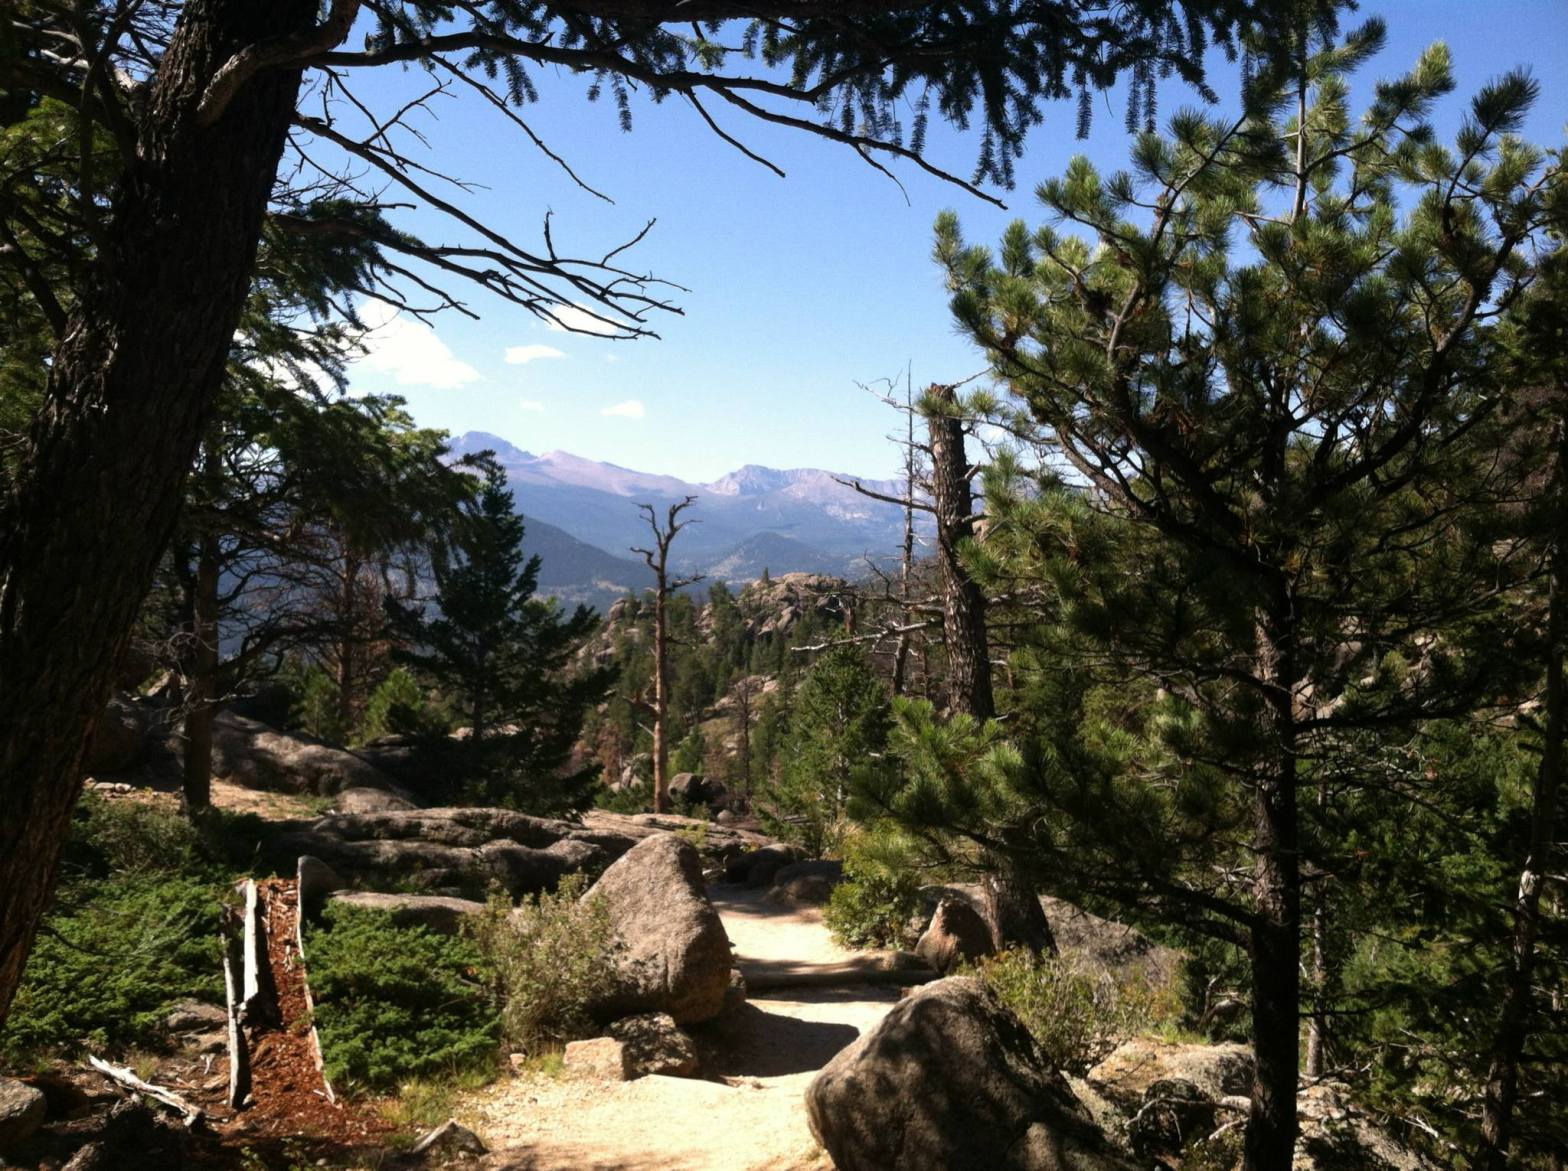 dirt hiking trail surrounded by pine trees looks out at the Rocky Mountains